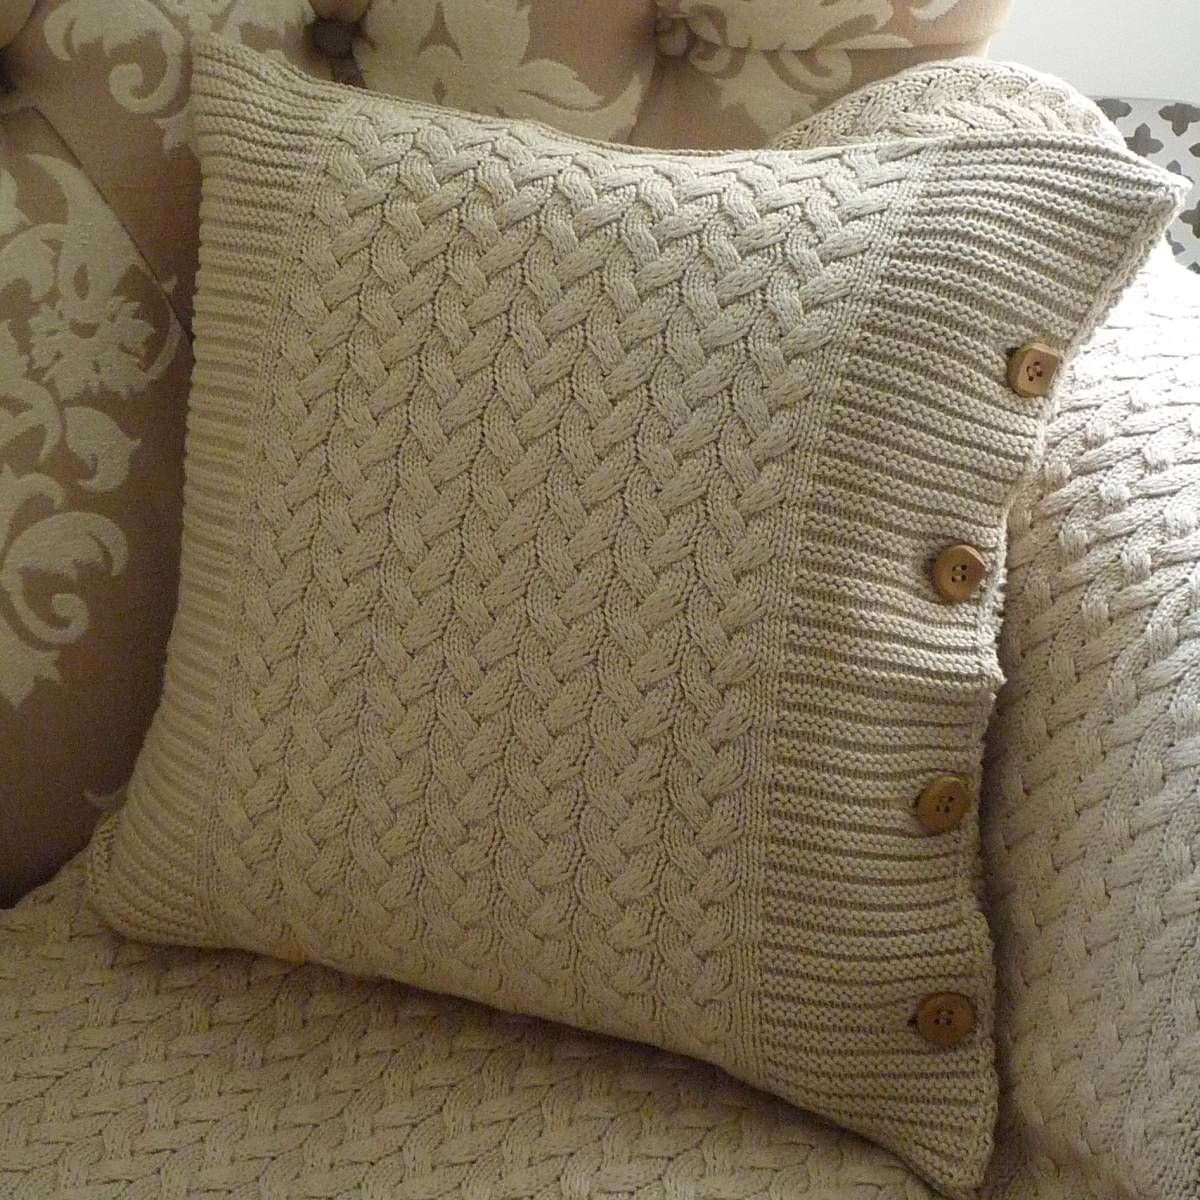 Knitting Patterns For Cushion Covers : Brompton Beige Cable-Knit Cushion Knitting Pinterest Cable, Knit croche...